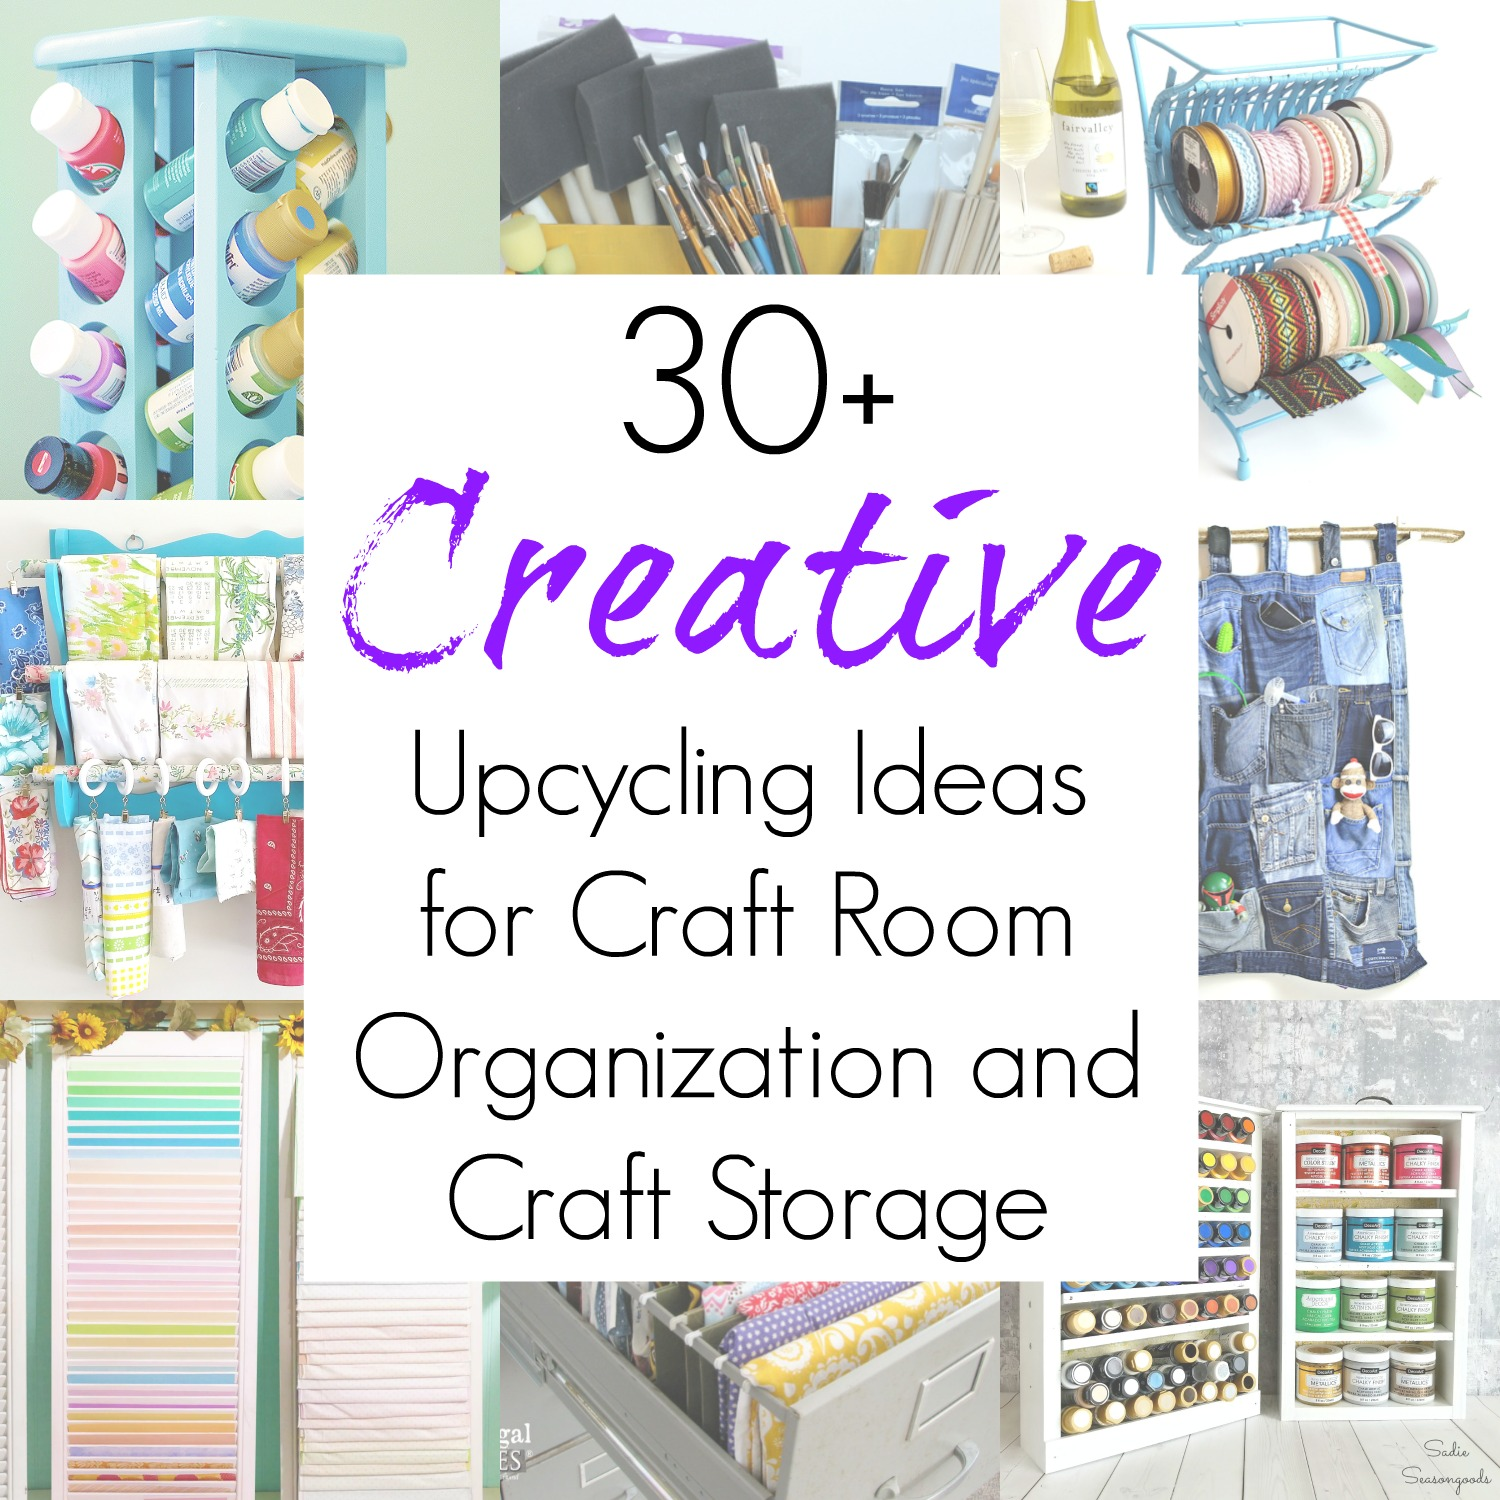 Upcycling Ideas for Craft Storage, Craft organizing, and Craft Room organization from repurposed thrift store items compiled by Sadie Seasongoods